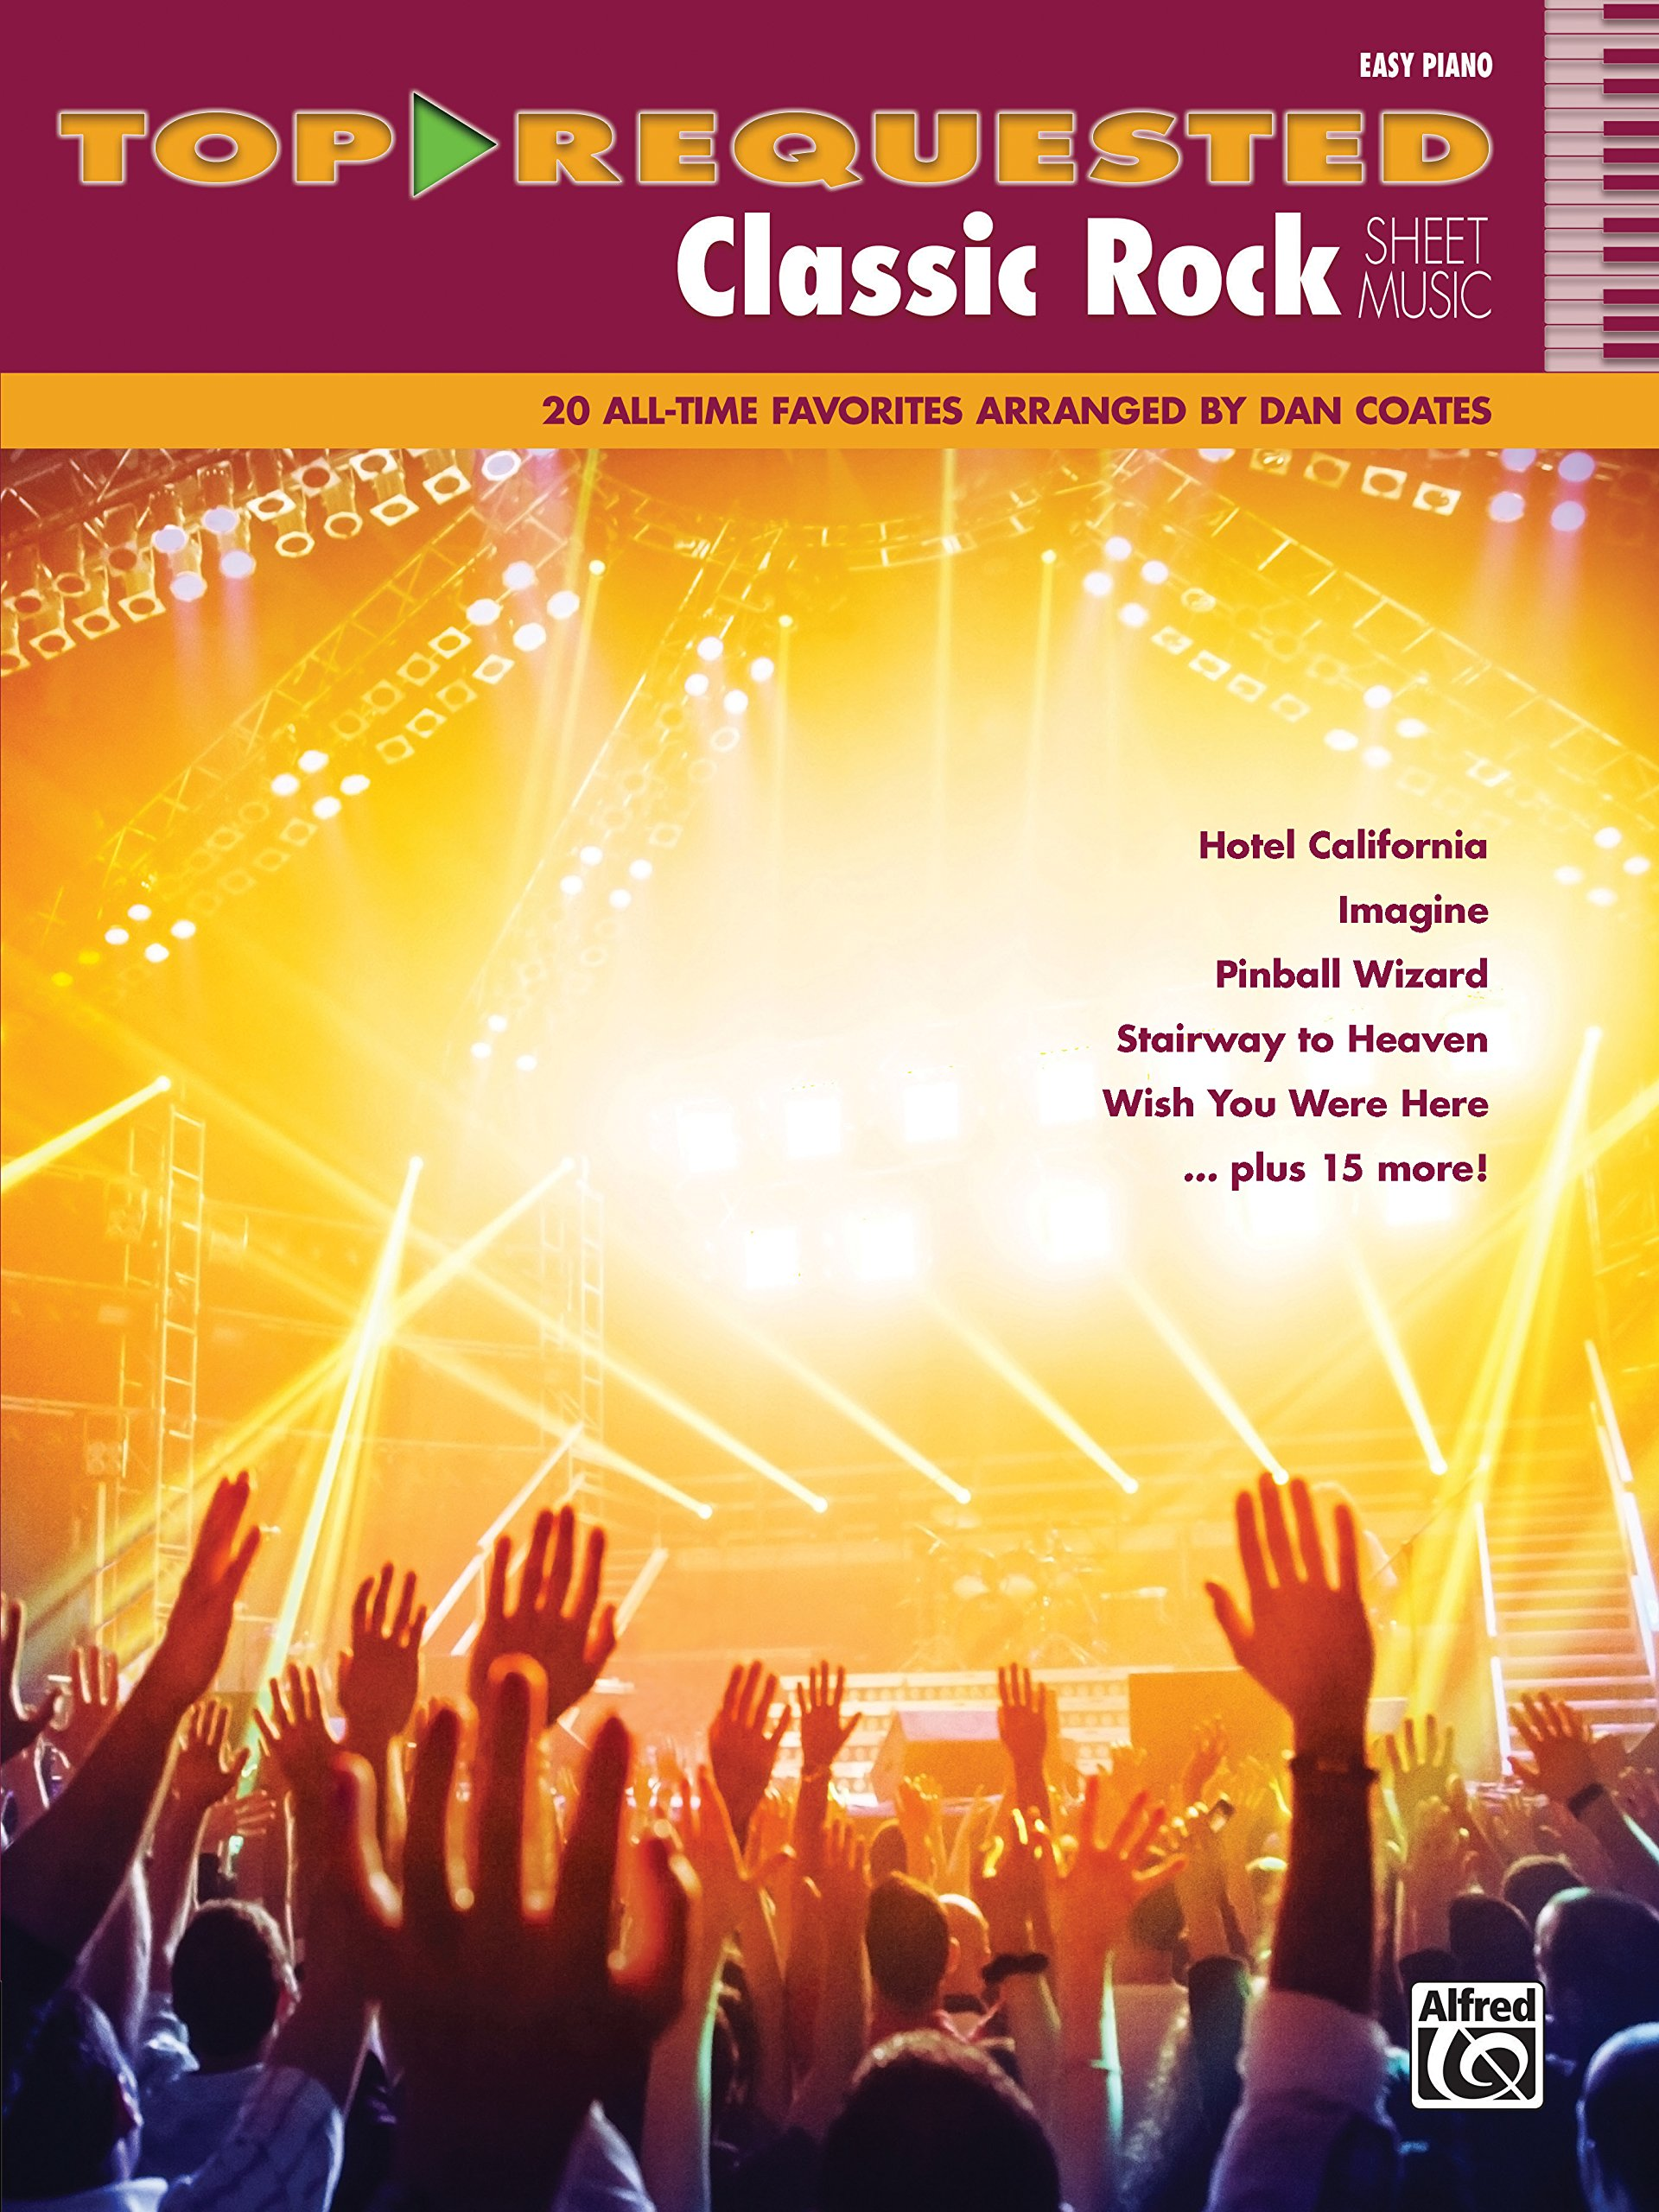 Download Top-Requested Classic Rock Sheet Music: 20 All-Time Favorites (Easy Piano) (Top-Requested Sheet Music) Text fb2 ebook